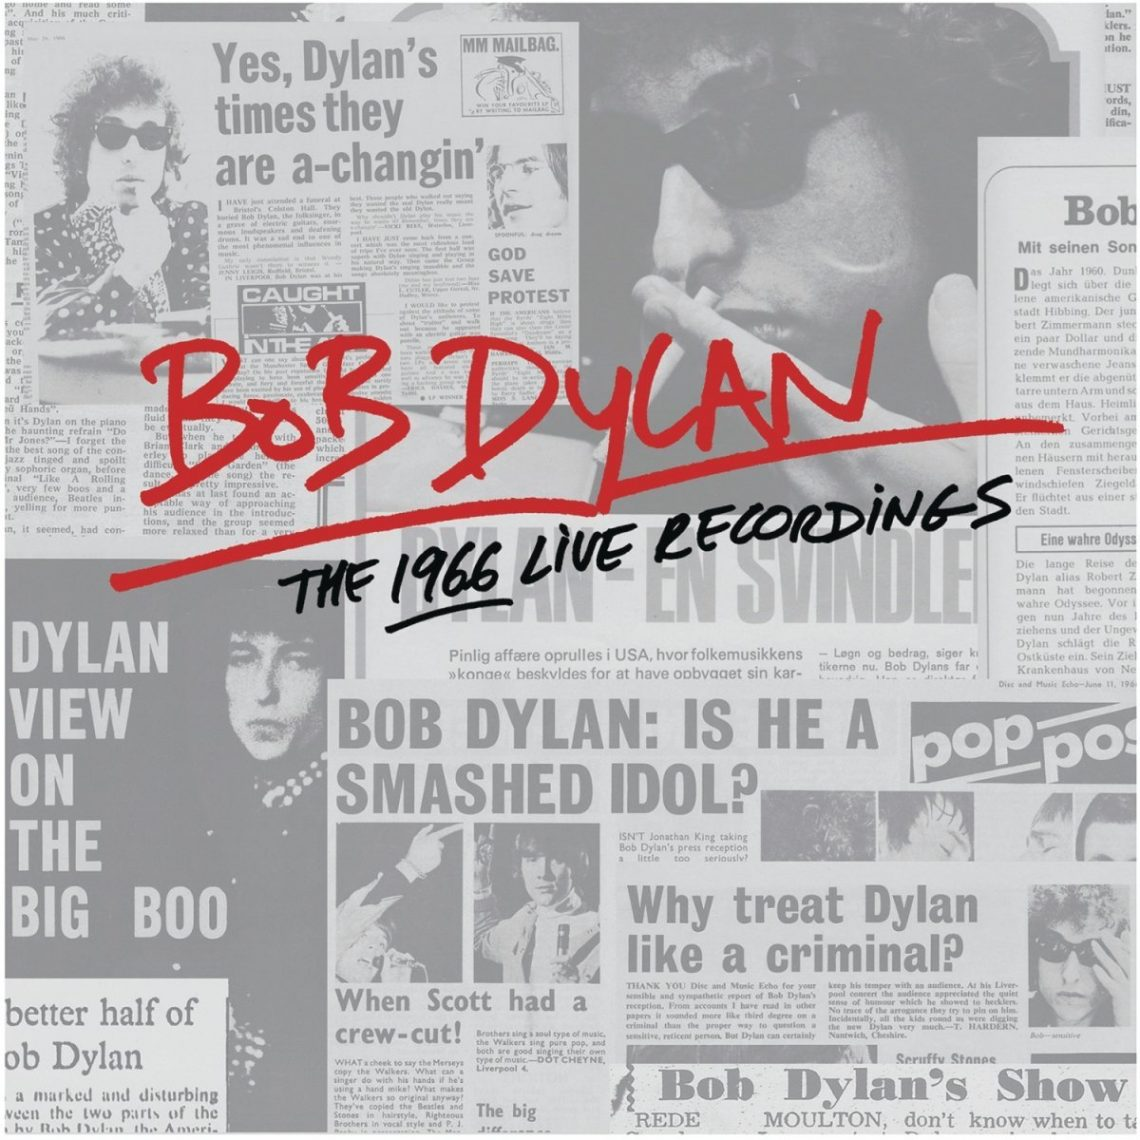 the-1966-live-recordings